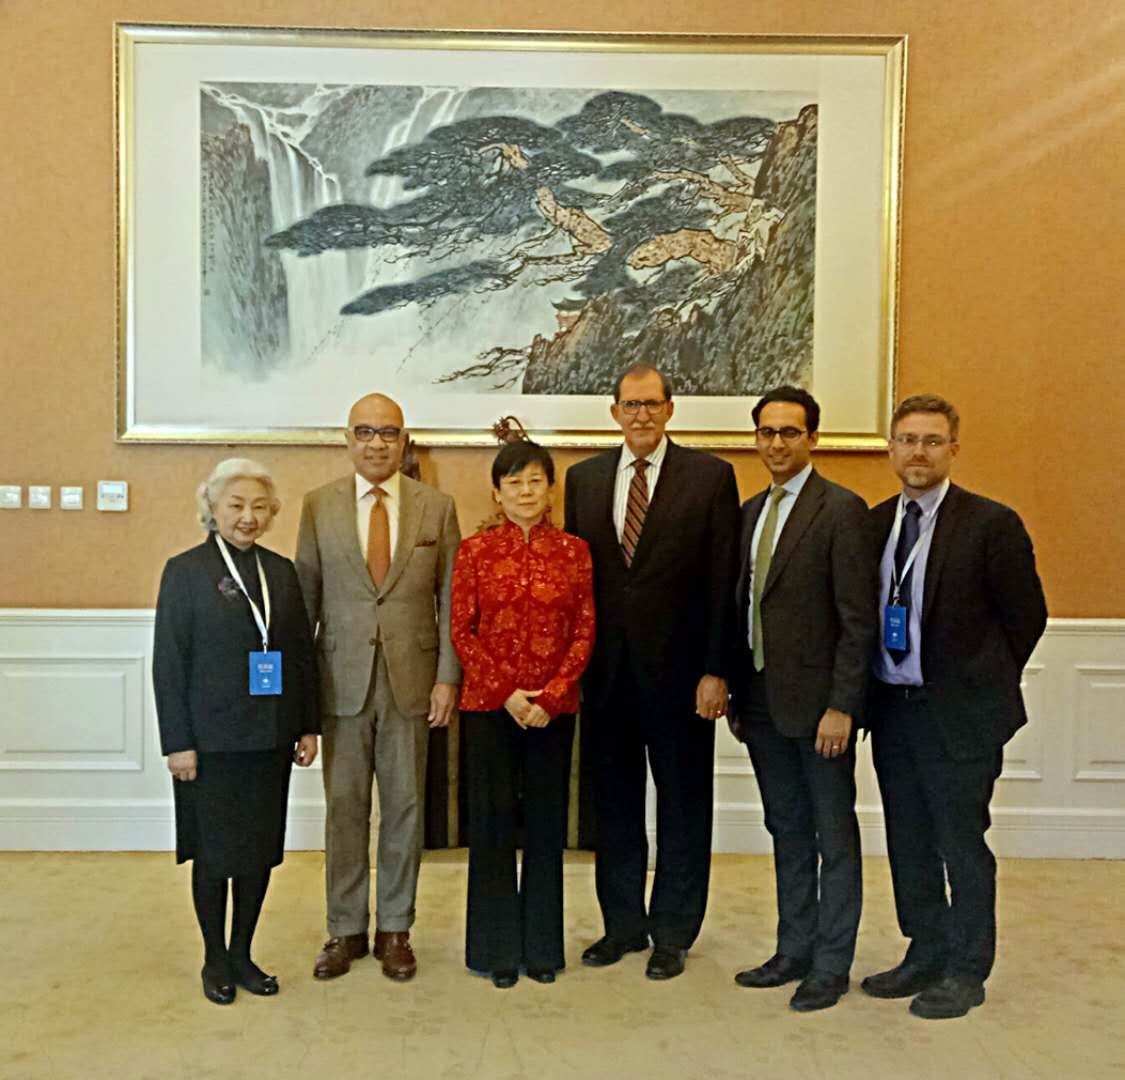 Left to right:   Dr. Elsie Leung Oi Sie, former Secretary for Justice of HKSAR; Darren Walker,   President of The Ford Foundation;   Li Xiaolin, President of CFAFFC;   David D. Arnold, President of The Asia Foundation; Asheesh Advani;   Birger Stamperdahl, CEO of Give2Asia.